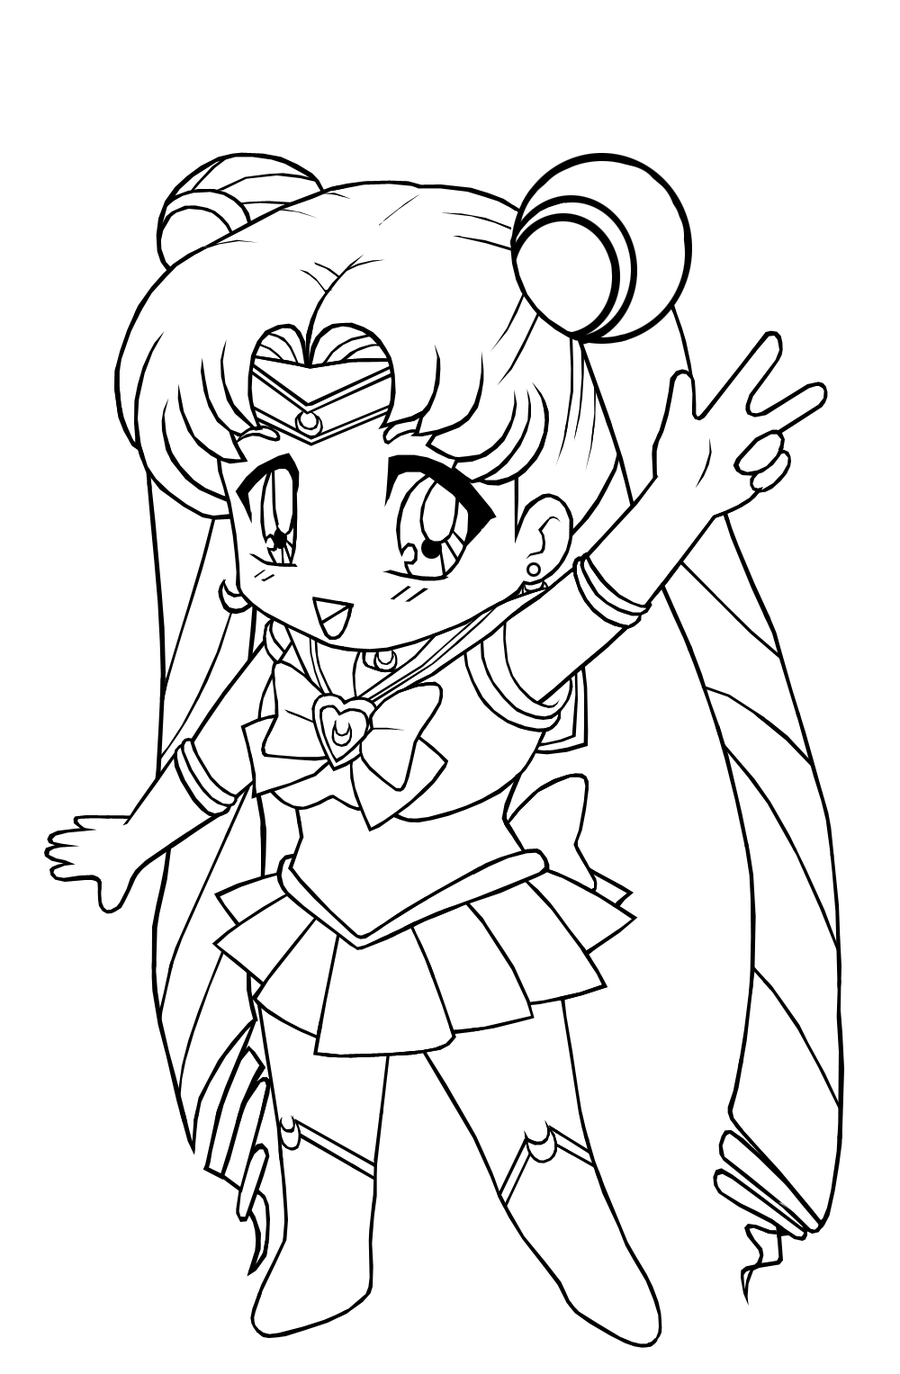 Anime coloring pages Google Search Sailor moon